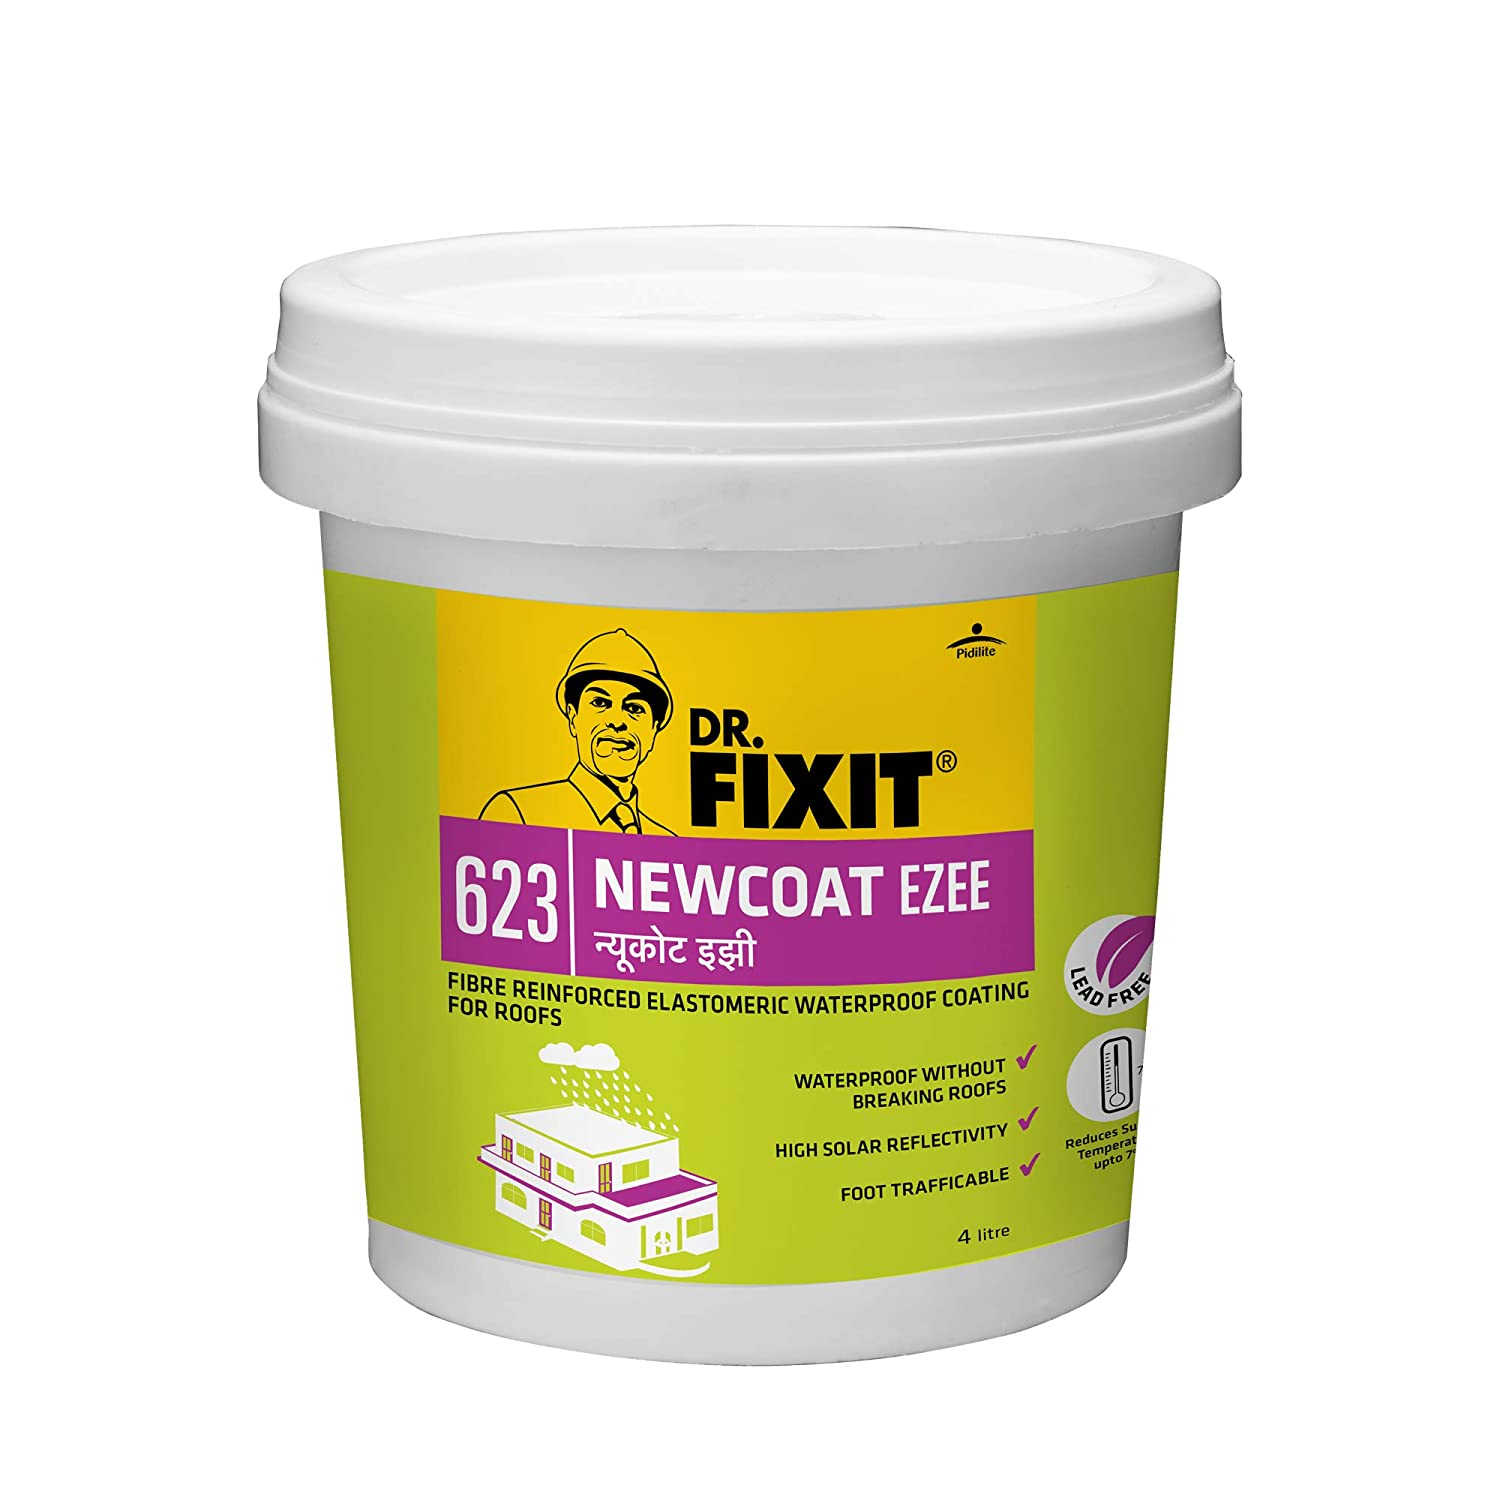 Dr Fixit 623 Newcoat Ezee Waterproof Coating For Roofs 4 Litre Amazon In Industrial Scientific